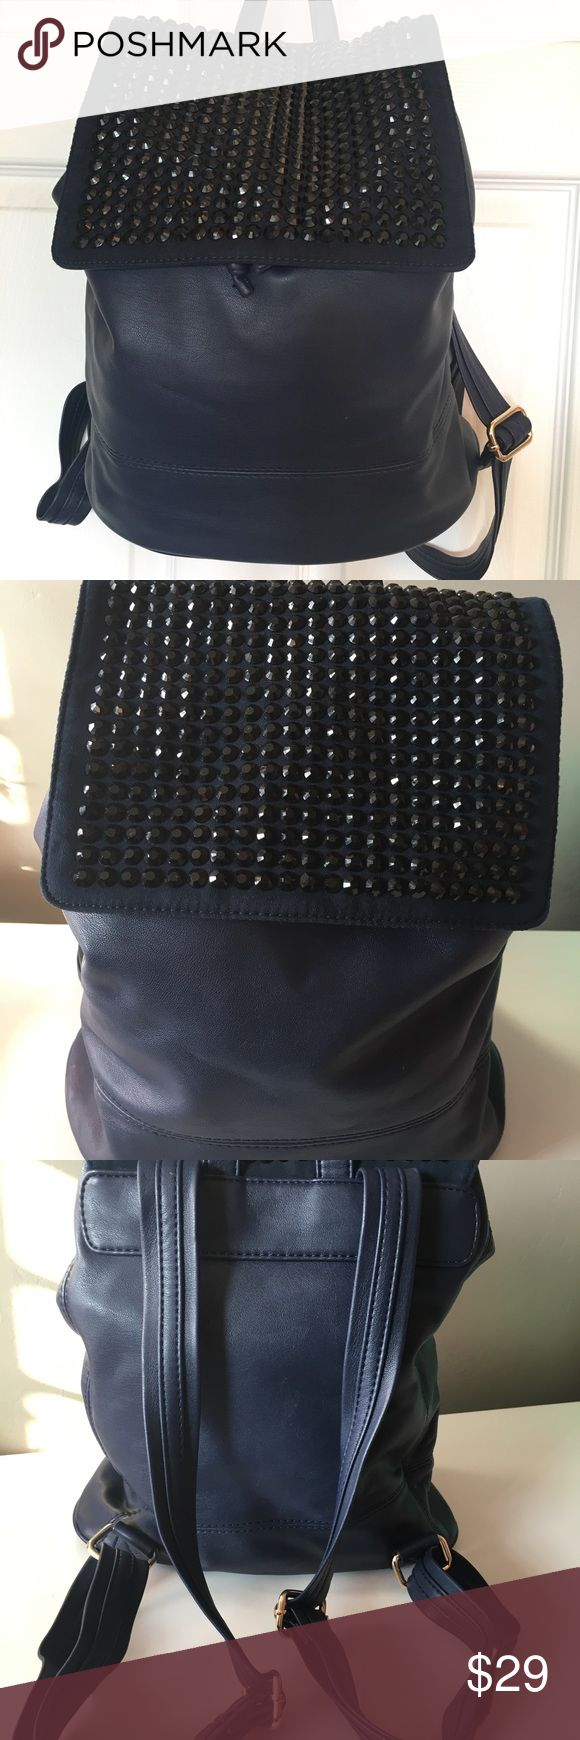 Deux Lux Rhinestone Studded Backpack Navy Blue Gorgeous midnight blue studded backpack by Deux Lux. If you know this brand they always have the best quality vegan leather items. This looks great to add an edge to your look. Excellent condition! Deux Lux Bags Backpacks